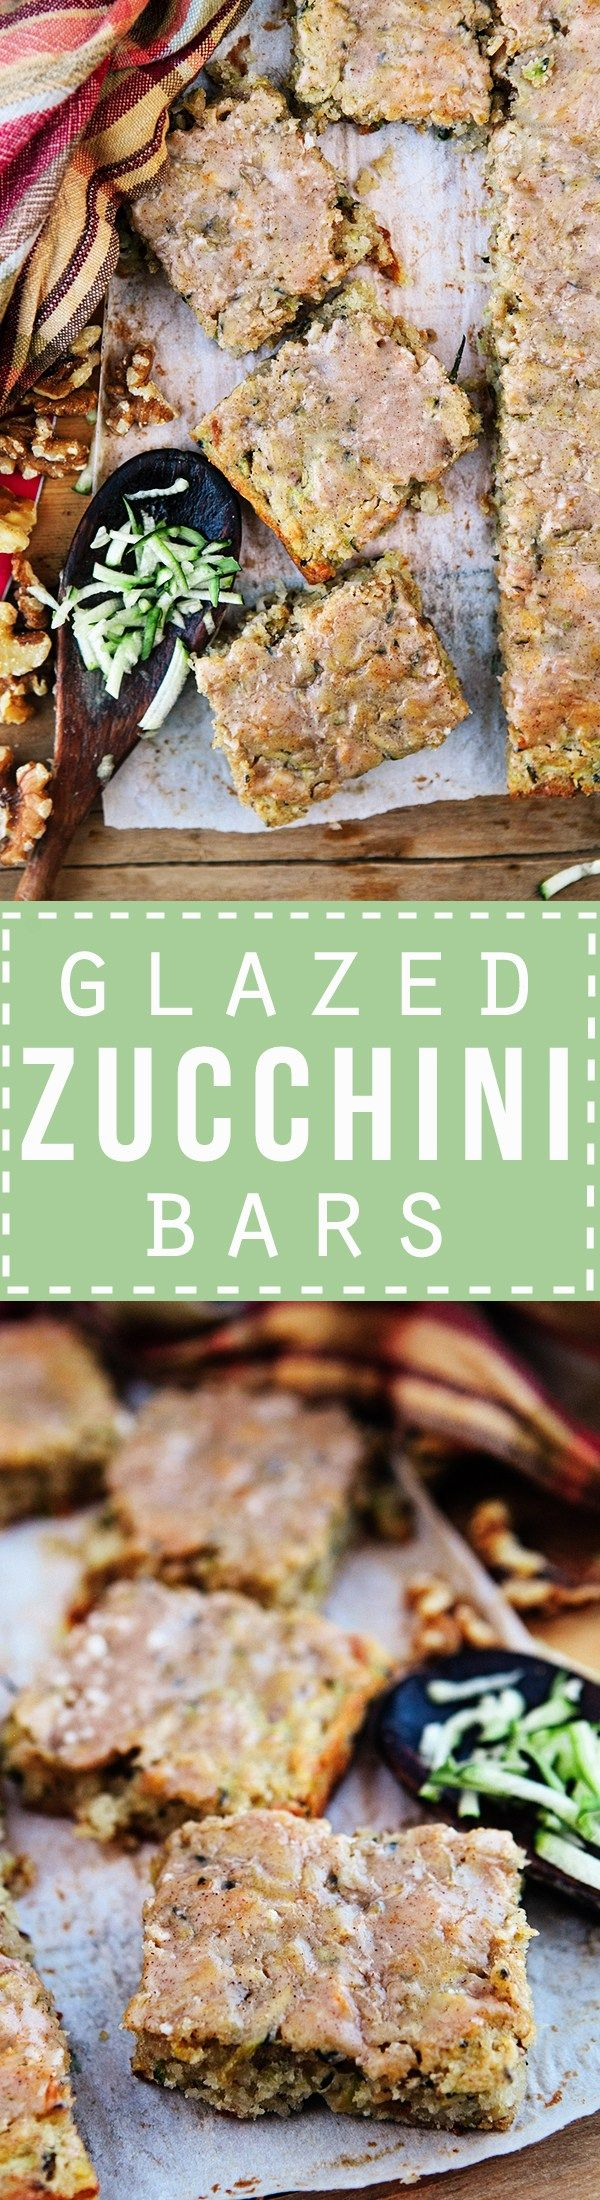 Zucchini Bars with Cinnamon Glaze - Some the Wiser